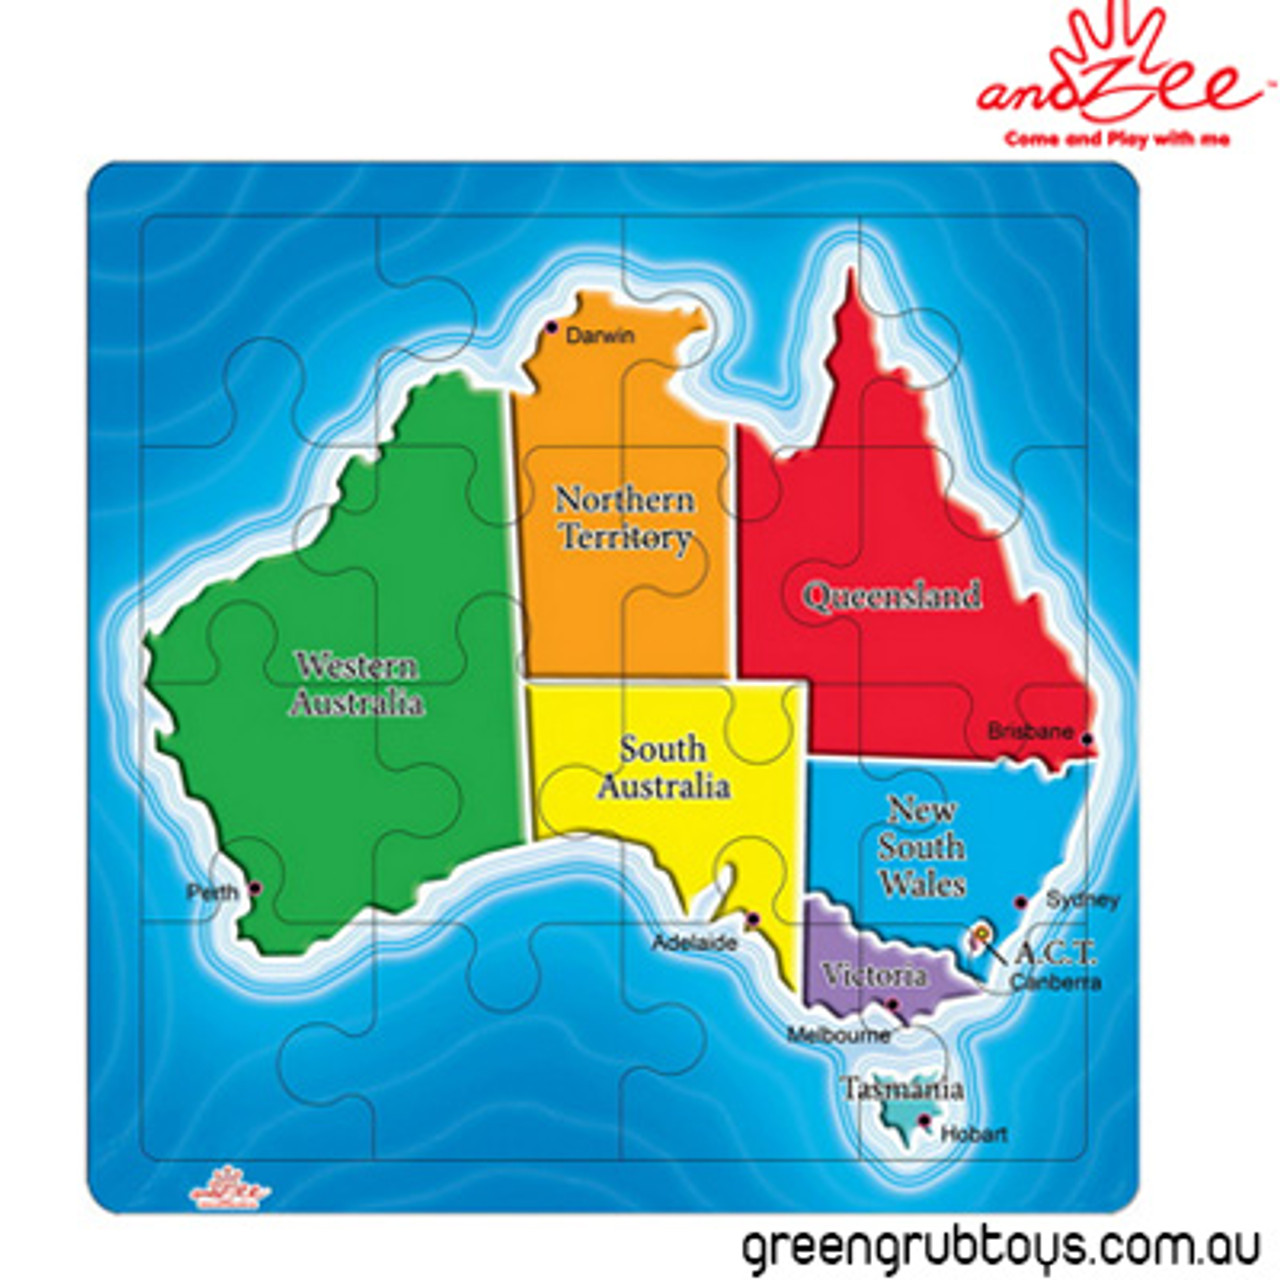 Australia Map And States.Andzee Australiana Wooden Jigsaw Puzzle Map Of Australian States 16pc